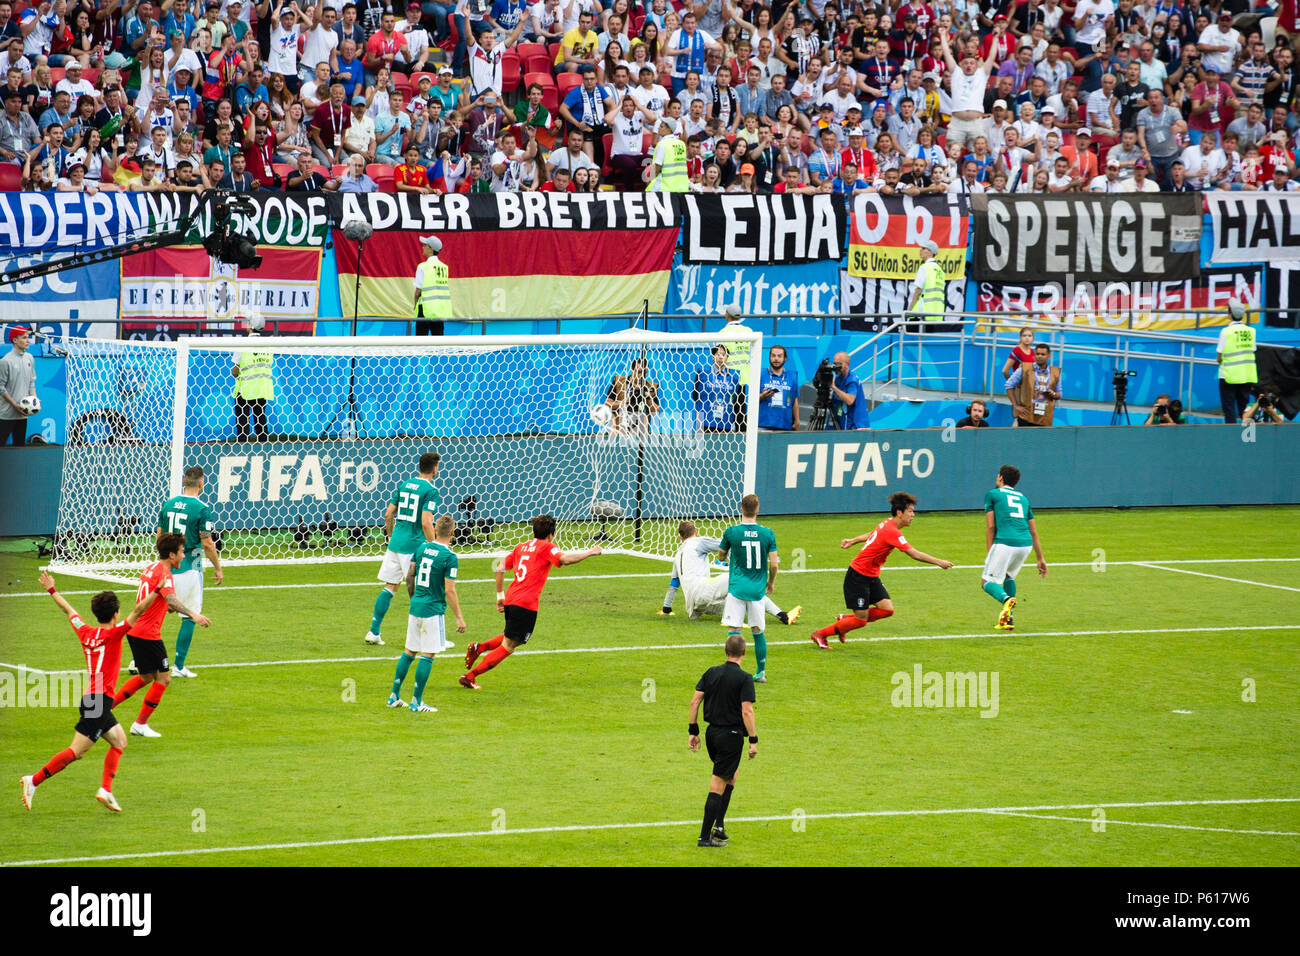 National football team of Korea Republic scores against Germany at the World Cup Russia 2018 in Kazan Russia. - Stock Image